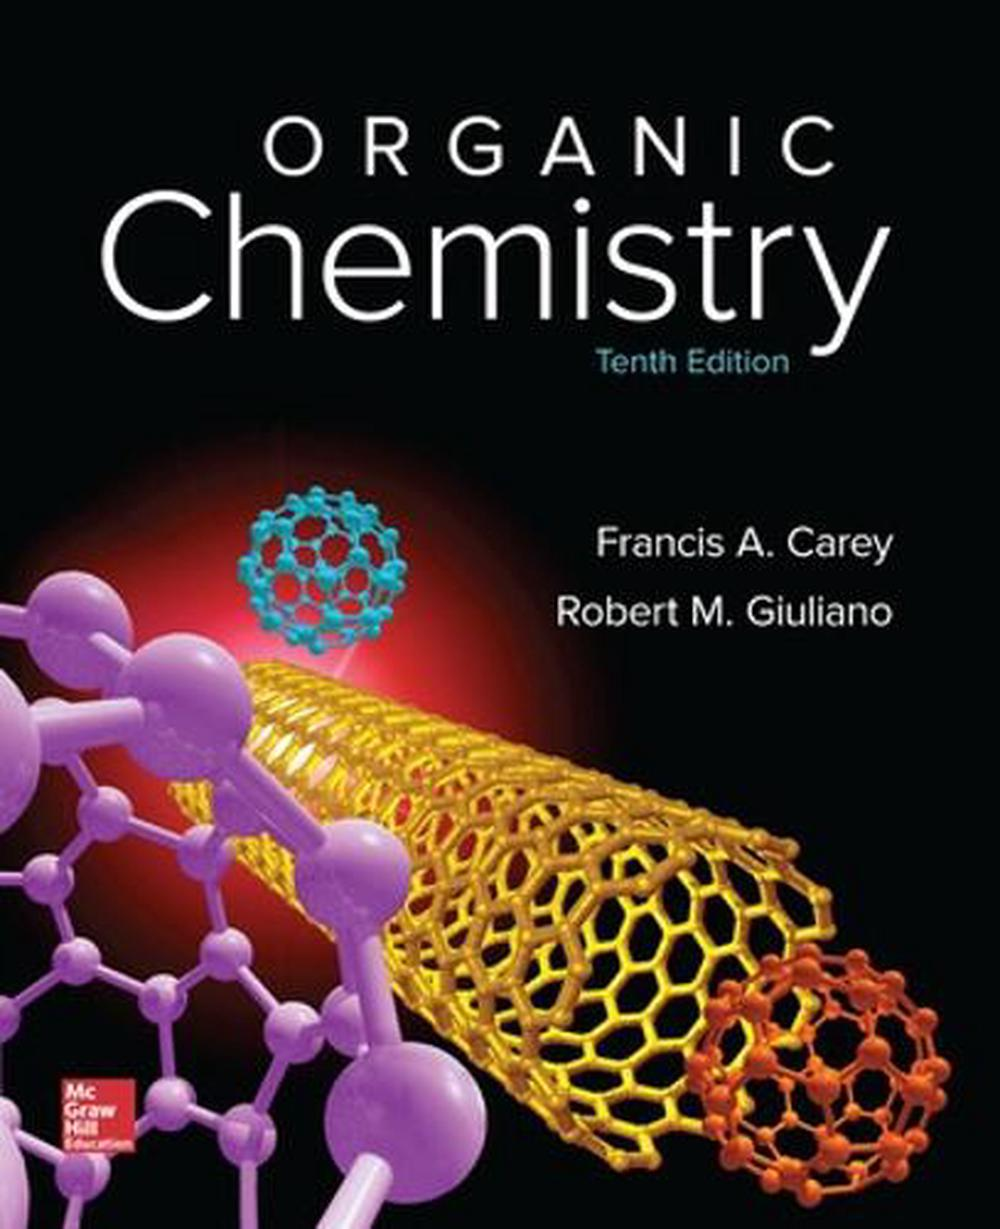 Organic Chemistry by Francis Carey, Hardcover, 9780073511214 | Buy